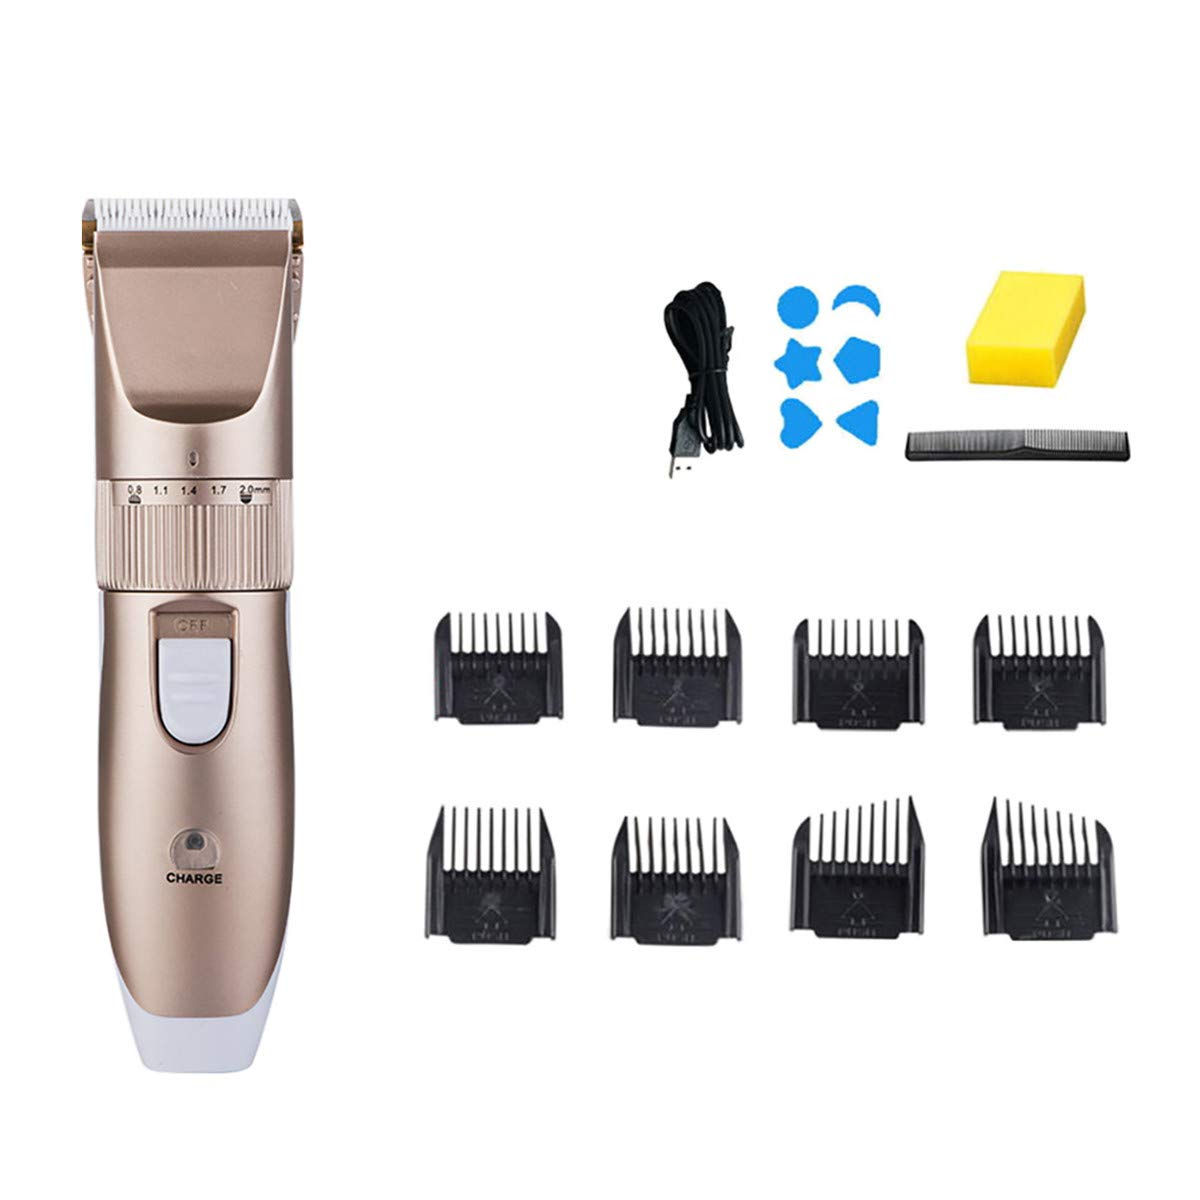 Max 76% Sales results No. 1 OFF 10-in-1 Hair Clippers for Men Beard Kit Trimmer Body Grooming